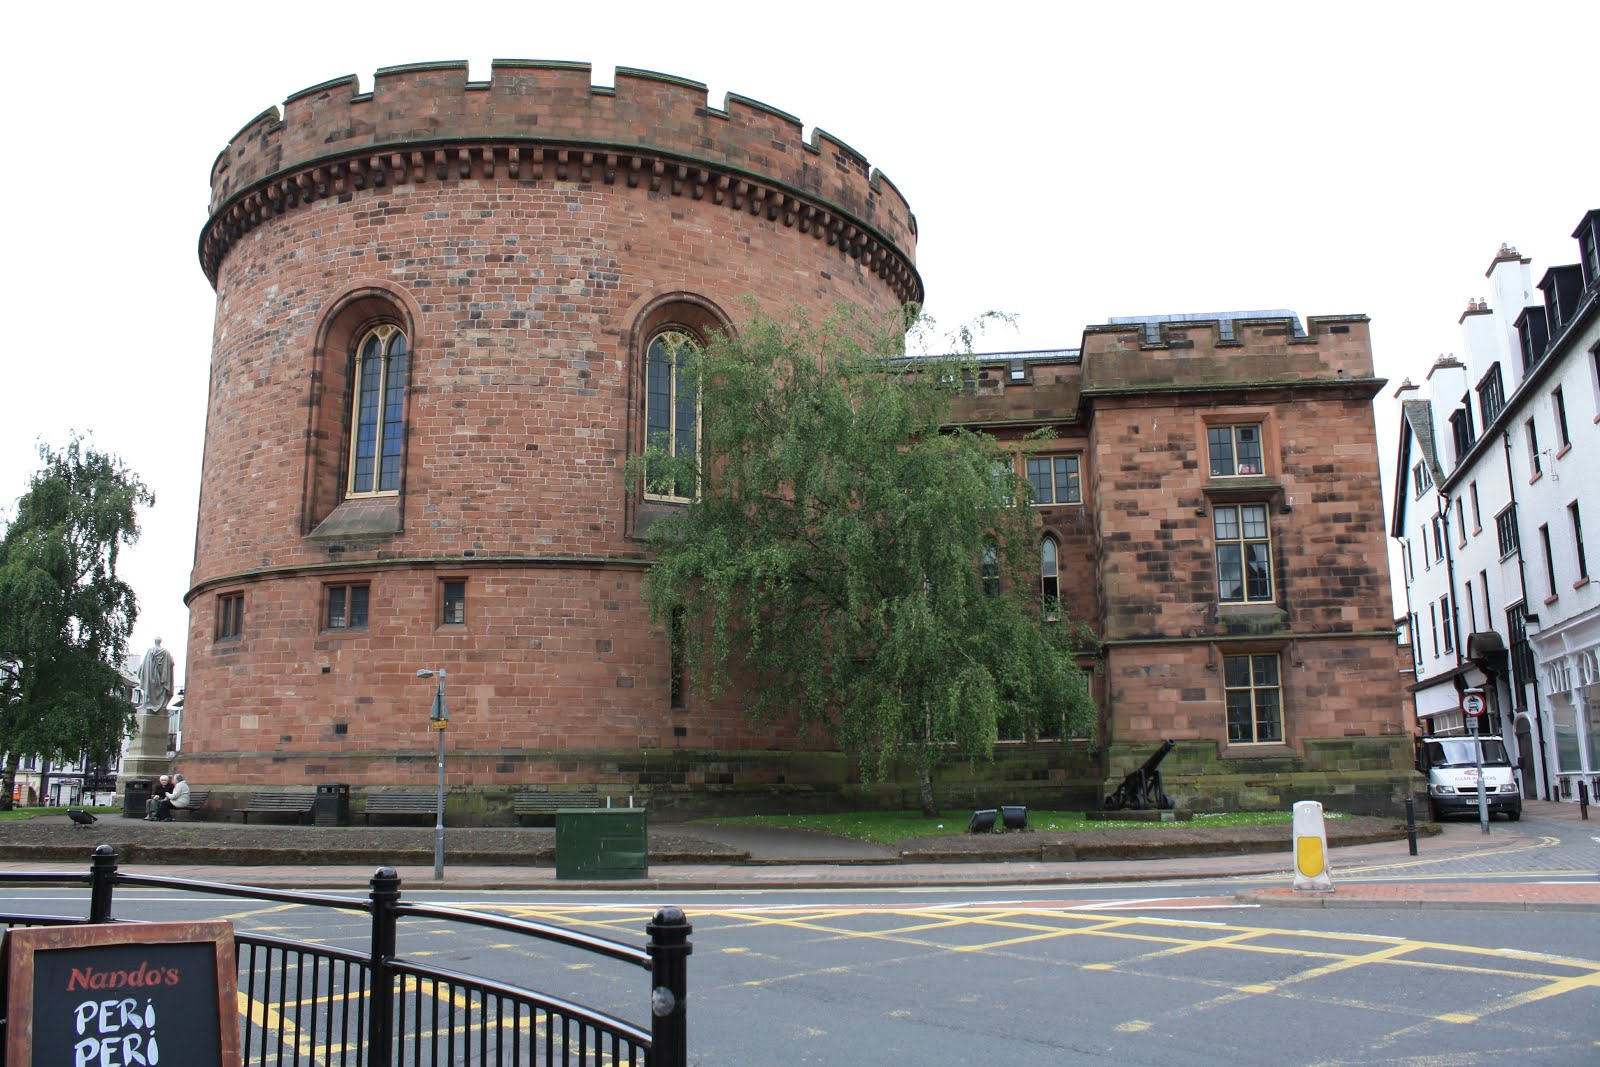 Half of The Citadel, Carlisle